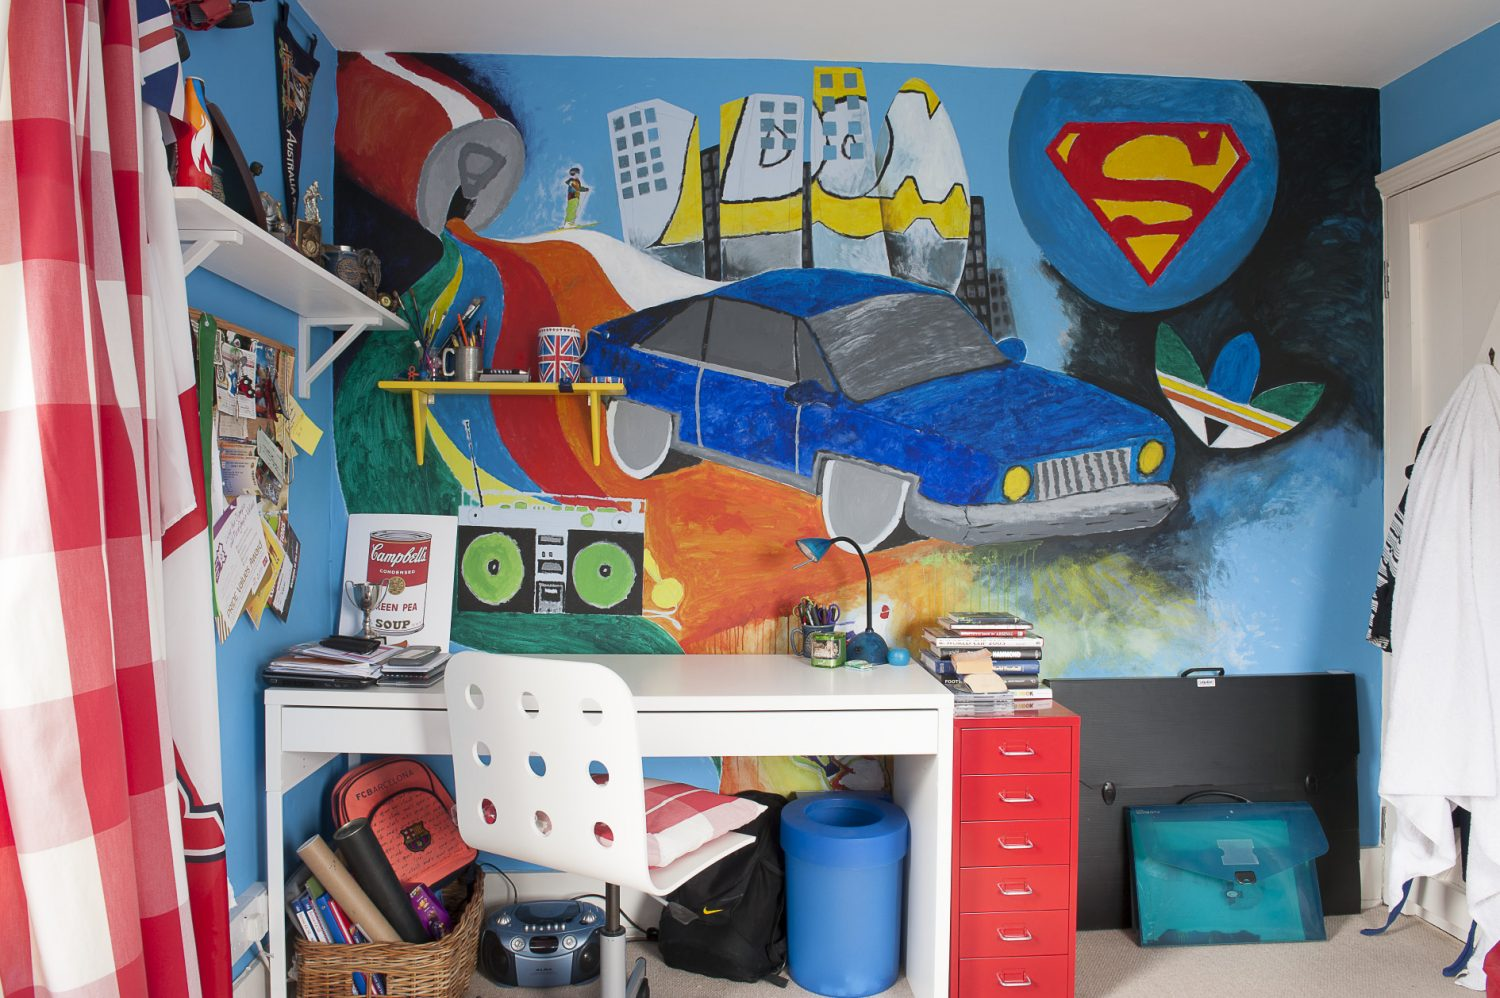 In son Dominic's room a whole wall above his desk is devoted to a spectacular mural